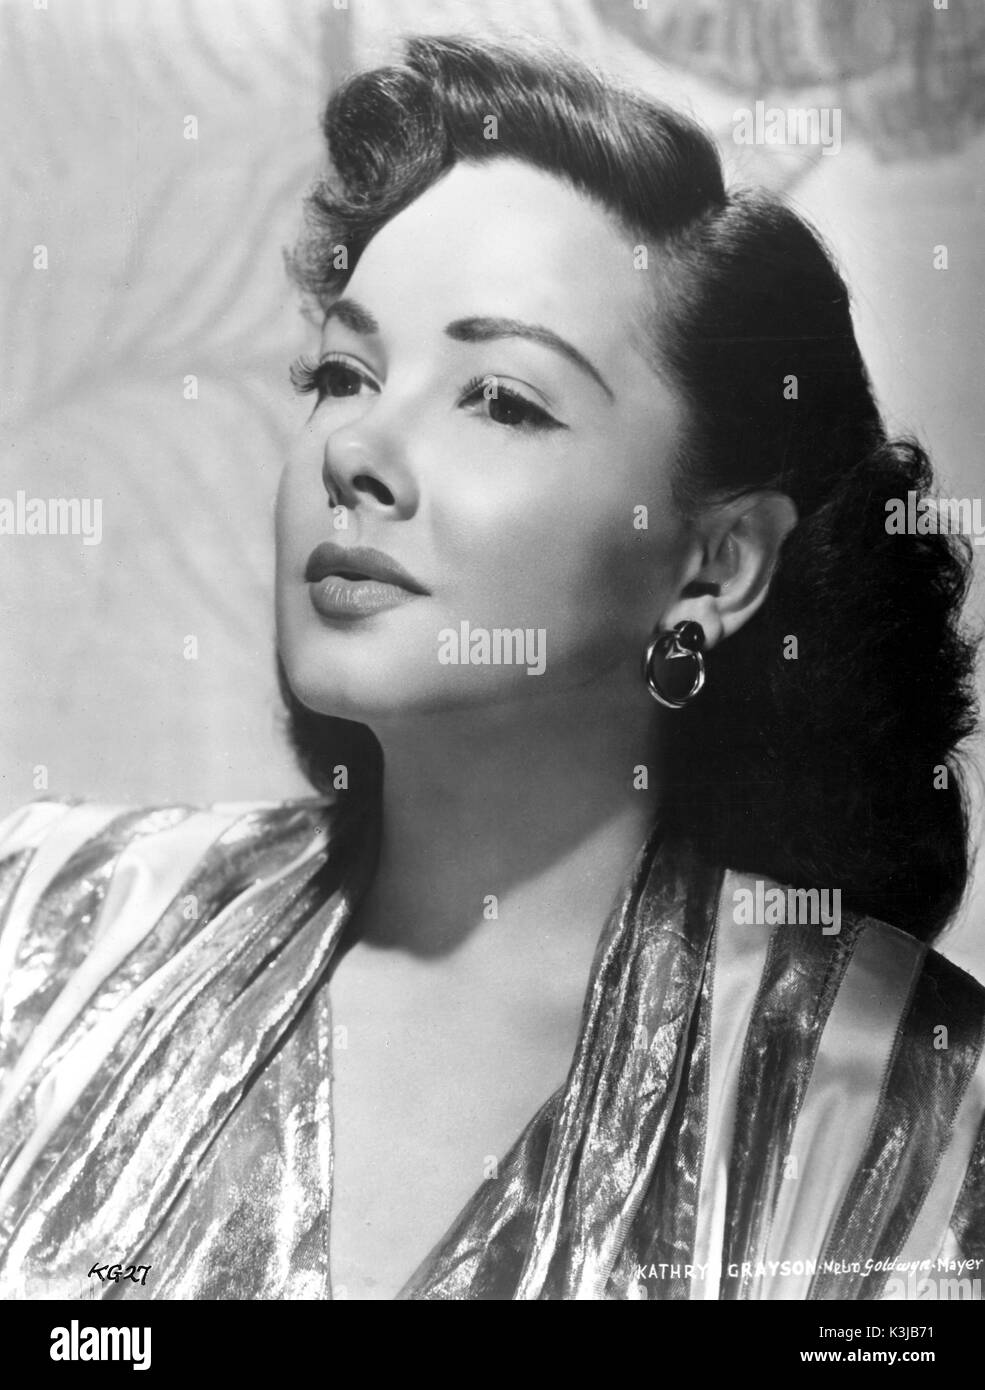 KATHRYN GRAYSON American Actress and Singer KATHRYN GRAYSON - Stock Image